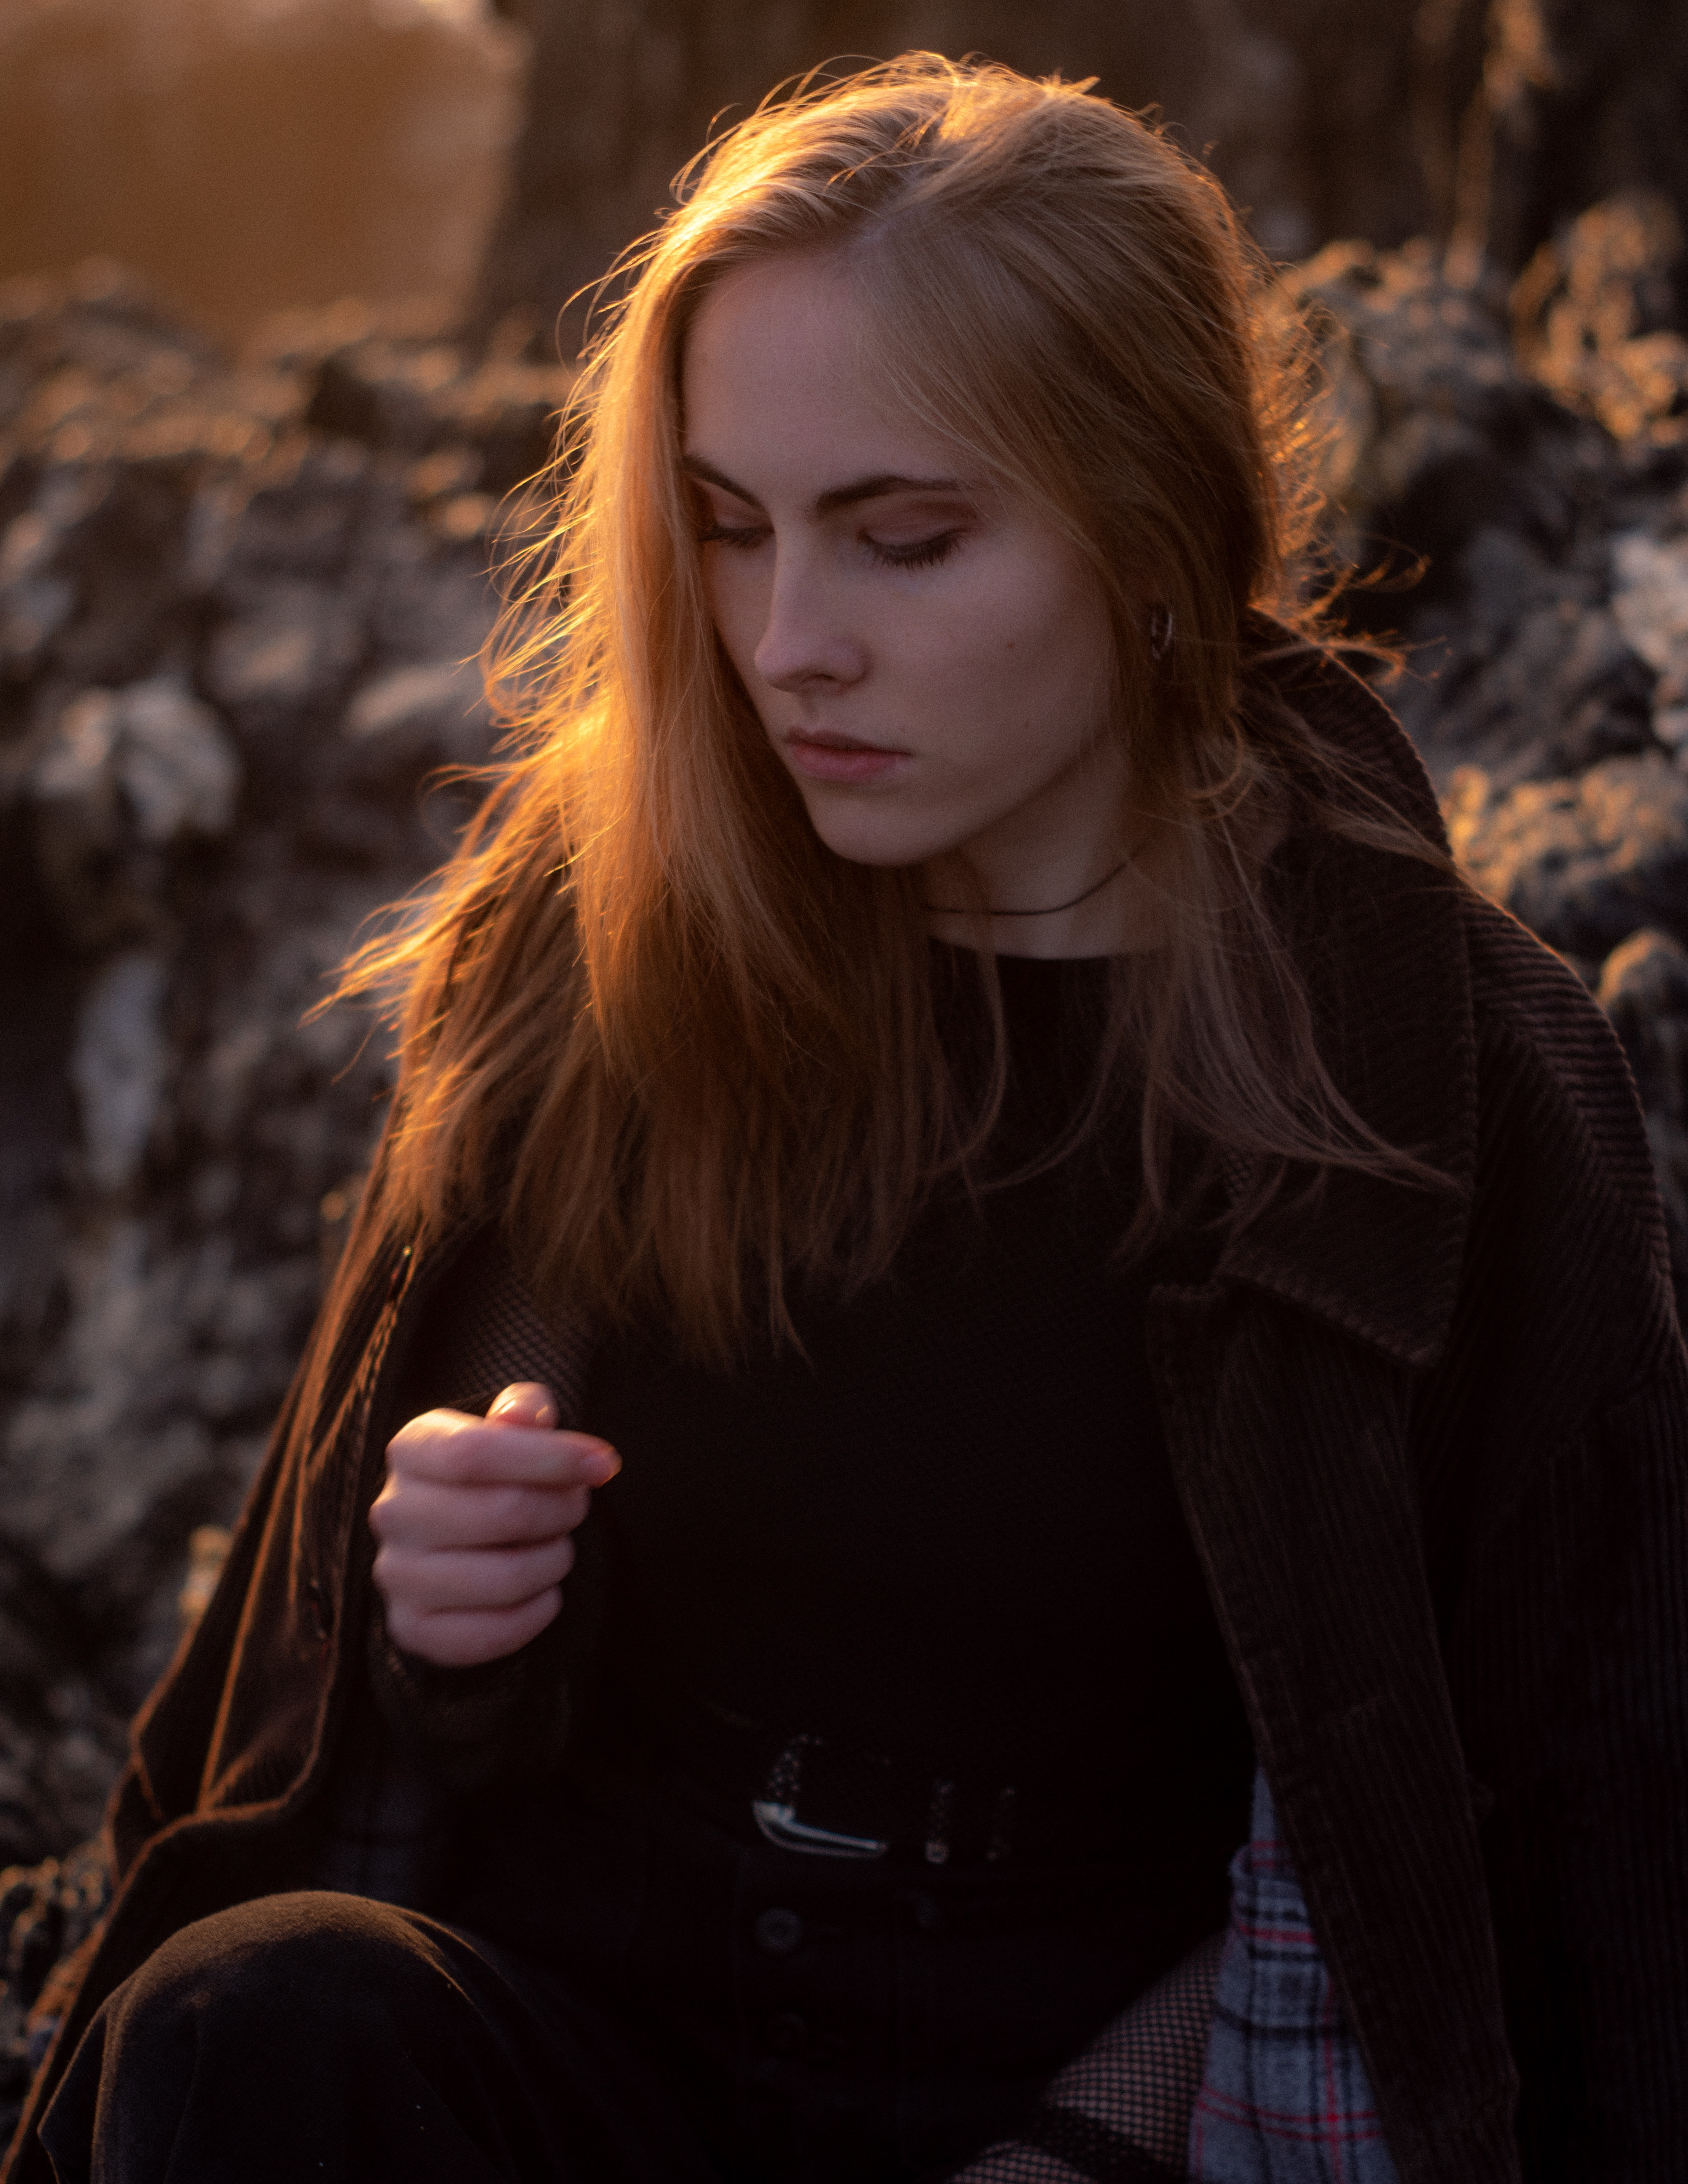 woman wearing brown jacket sitting on rock during golden hour